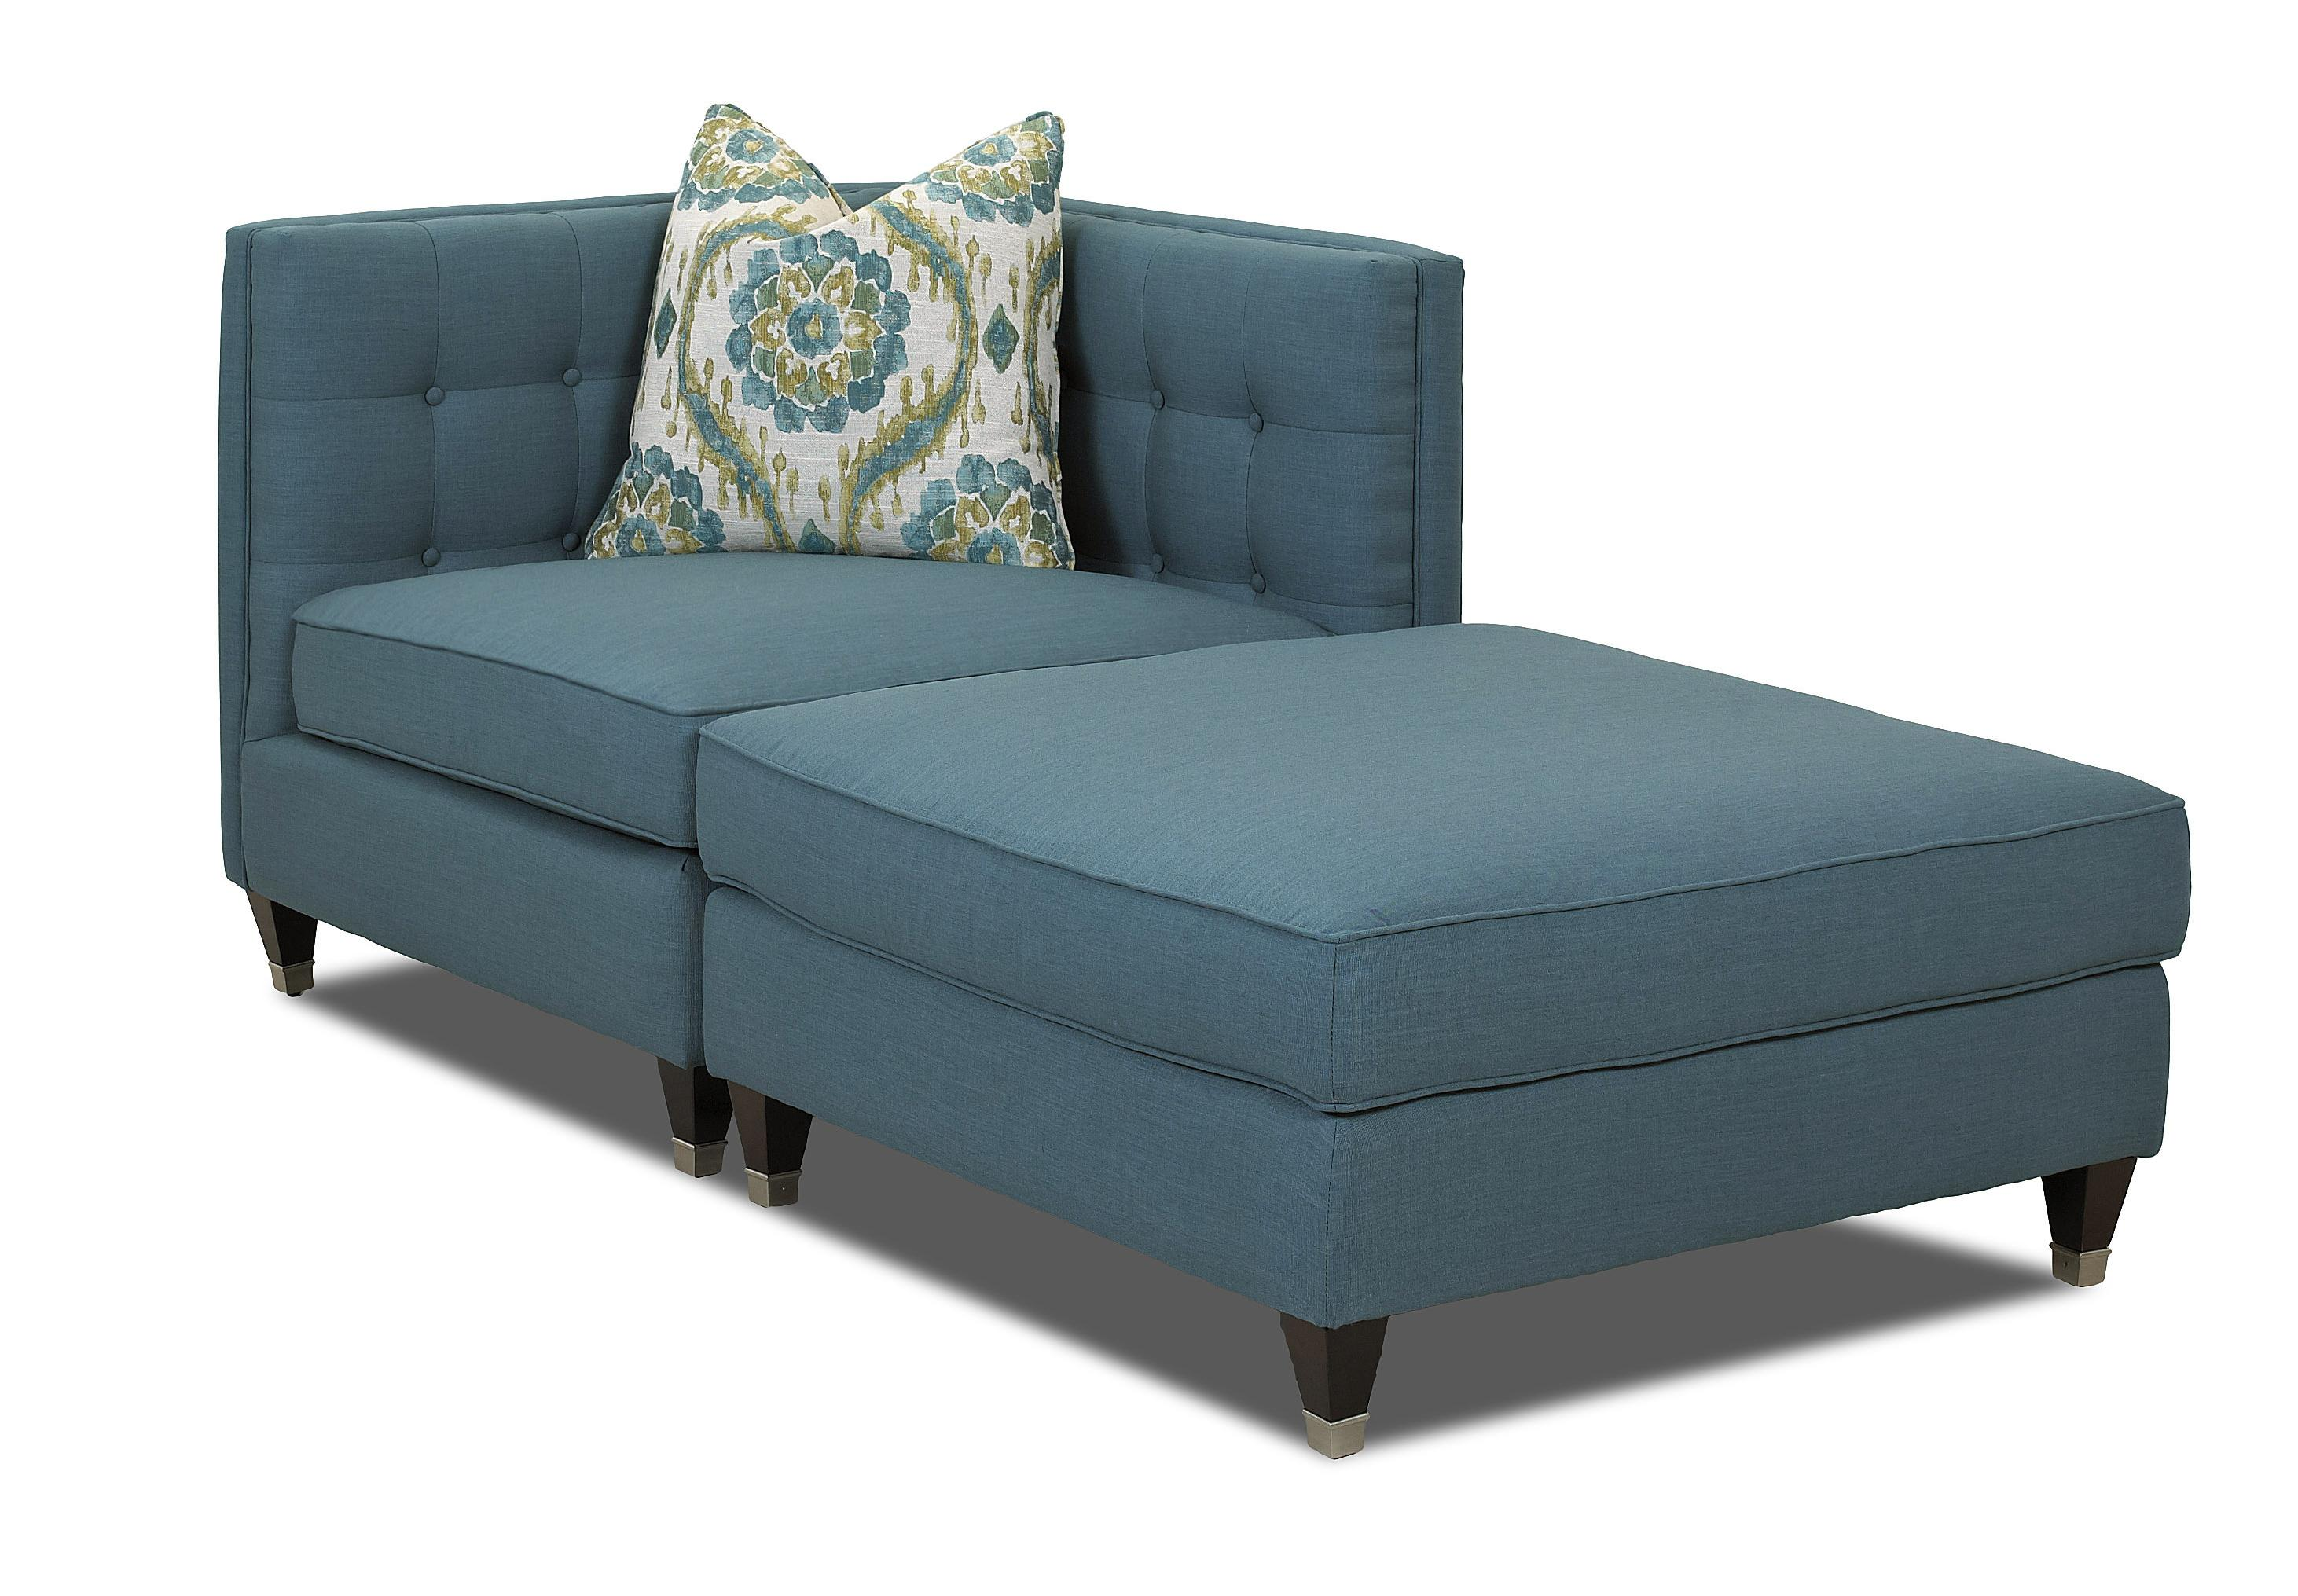 Two Piece Sectional Sofa with Tufting and Tuxedo Arms by Klaussner